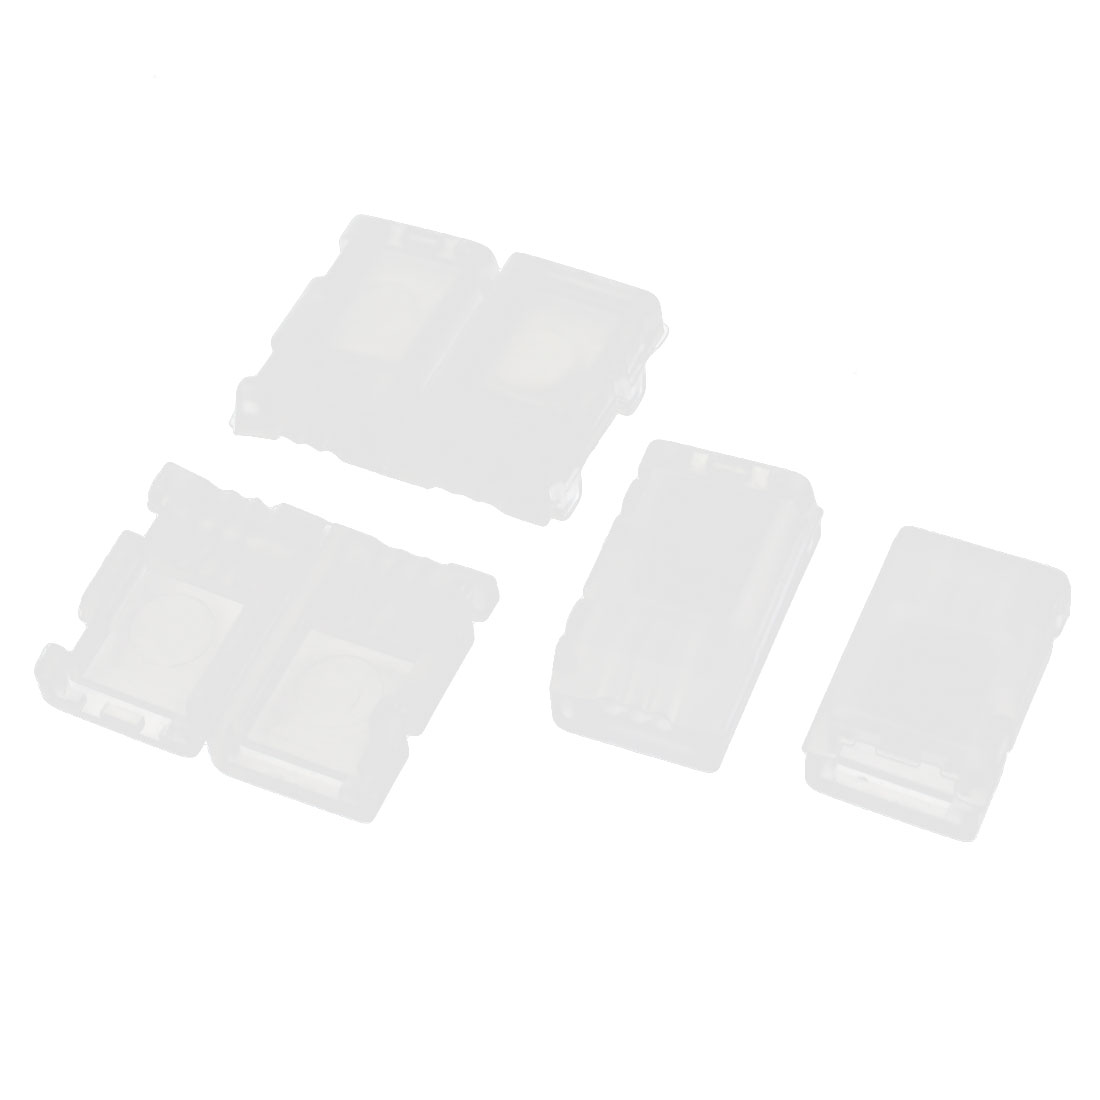 4Pcs White Plastic AB Clip Button Balance Protector Guard Cover for RC 7.4V 2S Lipo Battery